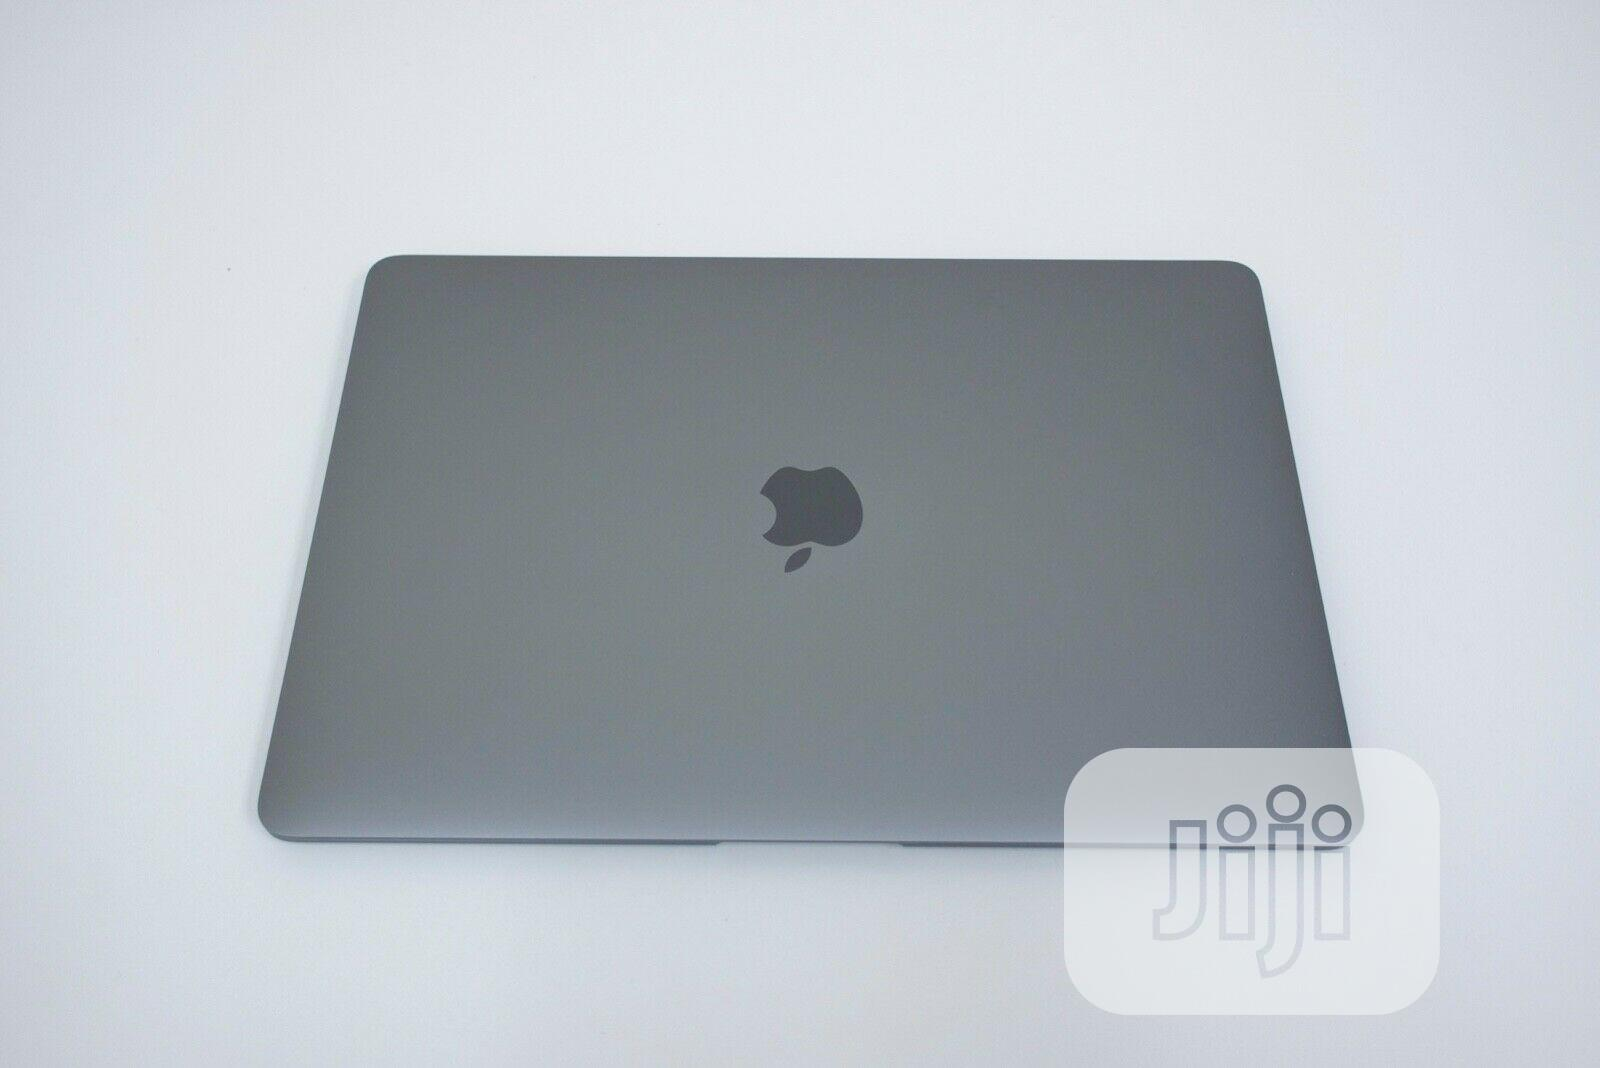 New Laptop Apple MacBook Air 8GB Intel Core i5 SSD 256GB | Laptops & Computers for sale in Ikeja, Lagos State, Nigeria